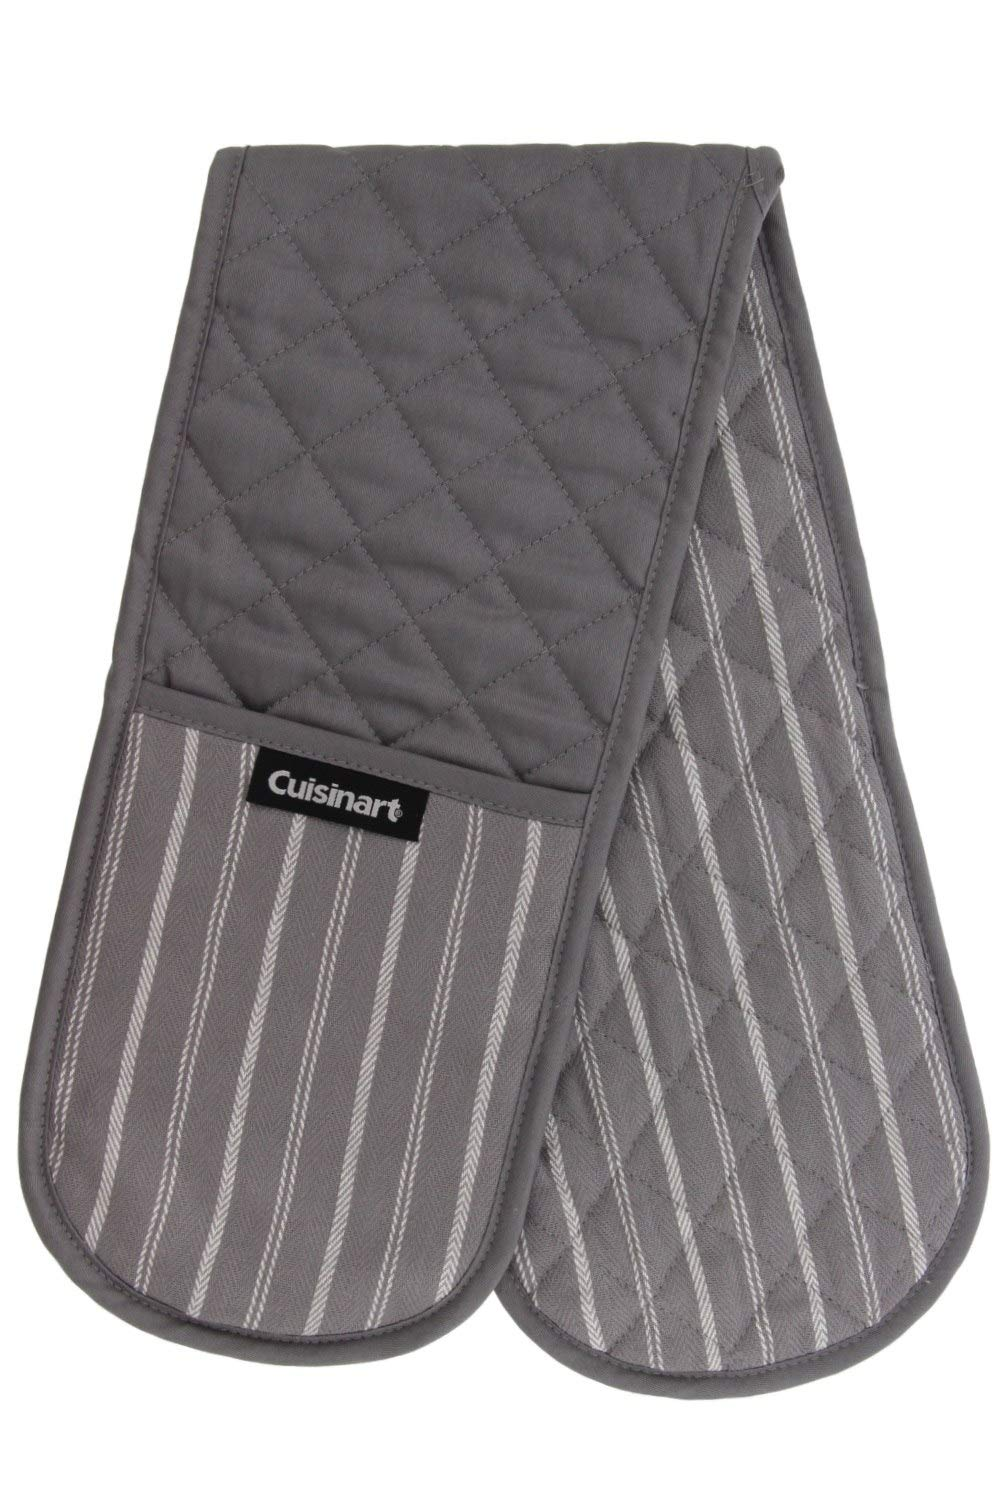 "Cuisinart Quilted Heat Resistant Double Oven Mitt/Glove, Twill Stripe, 7.5"" x 35"", Great for Cooking, Baking, and Handling Hot Pots & Pans- Titanium Grey"